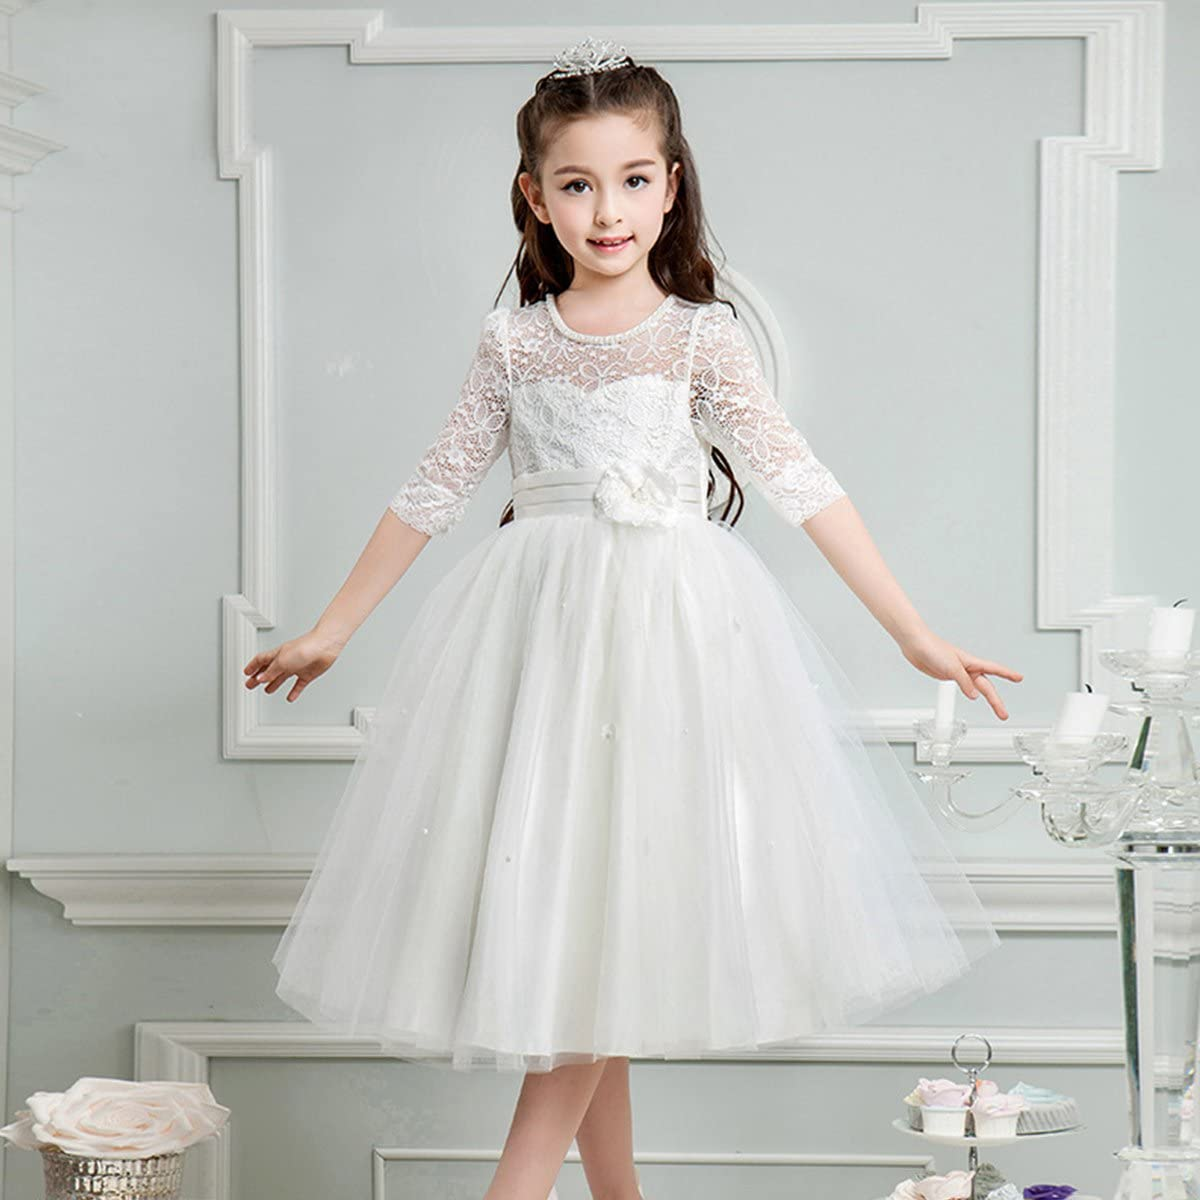 IBTOM CASTLE Girl Lace Flowers Princess Prom Wedding Dress Tulle Party Pageant Gown